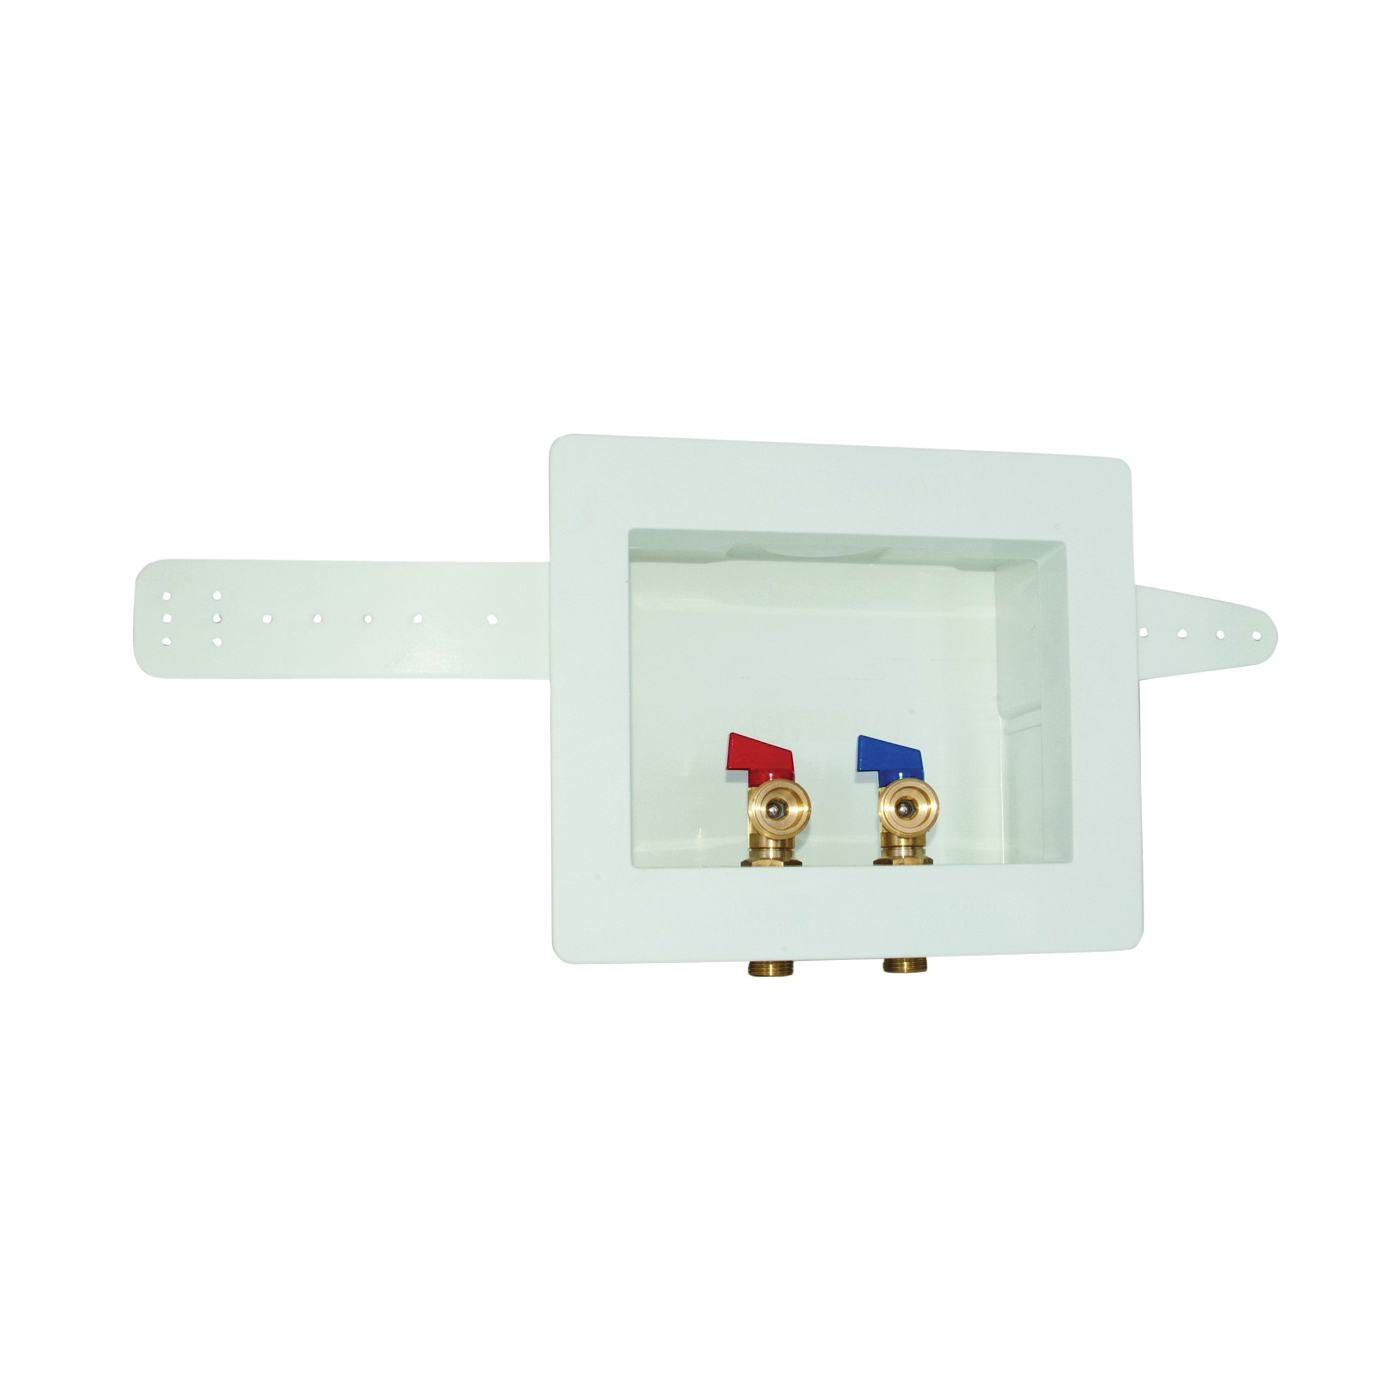 Picture of EASTMAN 60243 Washing Machine Outlet Box, 1/2, 3/4 in Connection, Brass